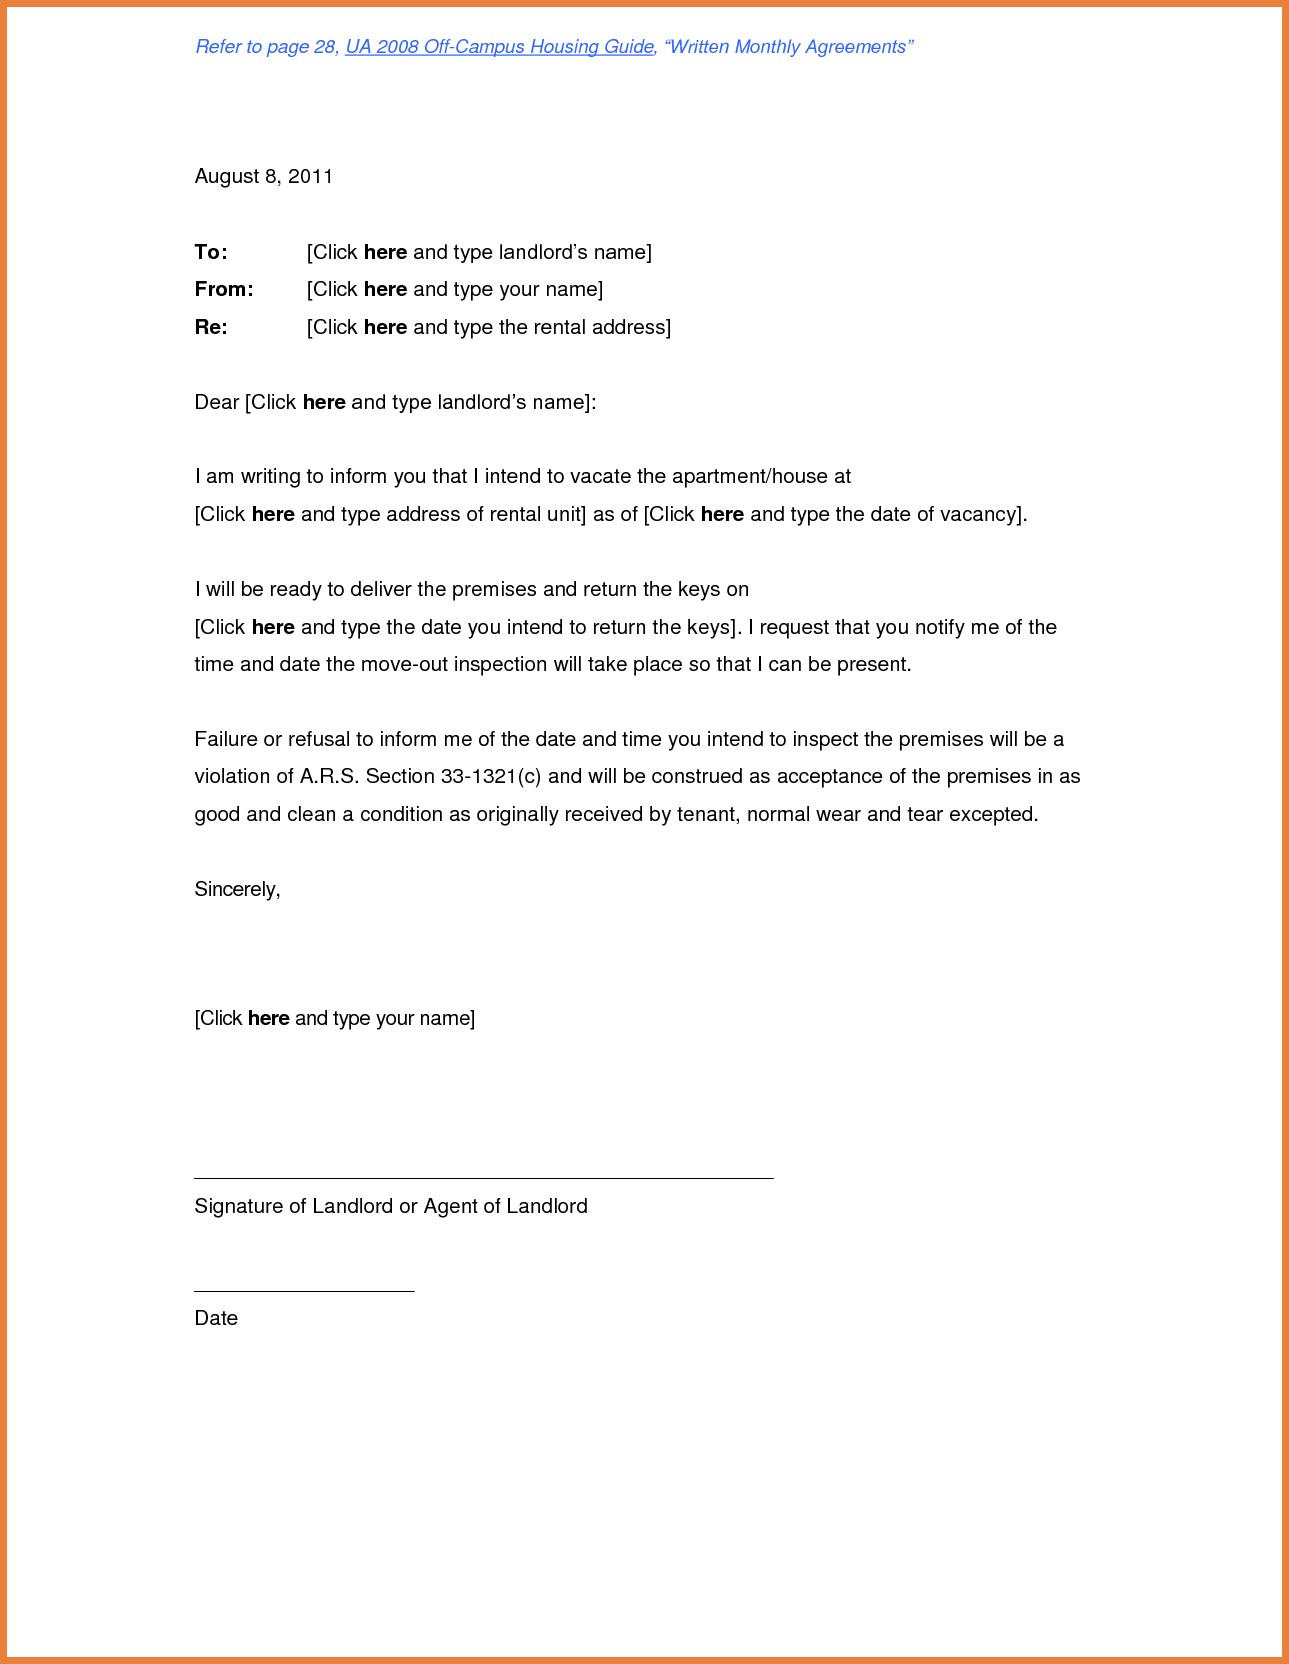 Routine Inspection Letter to Tenant Template - Property Inspection Letter to Tenant Uk Archives Best 18 Elegant